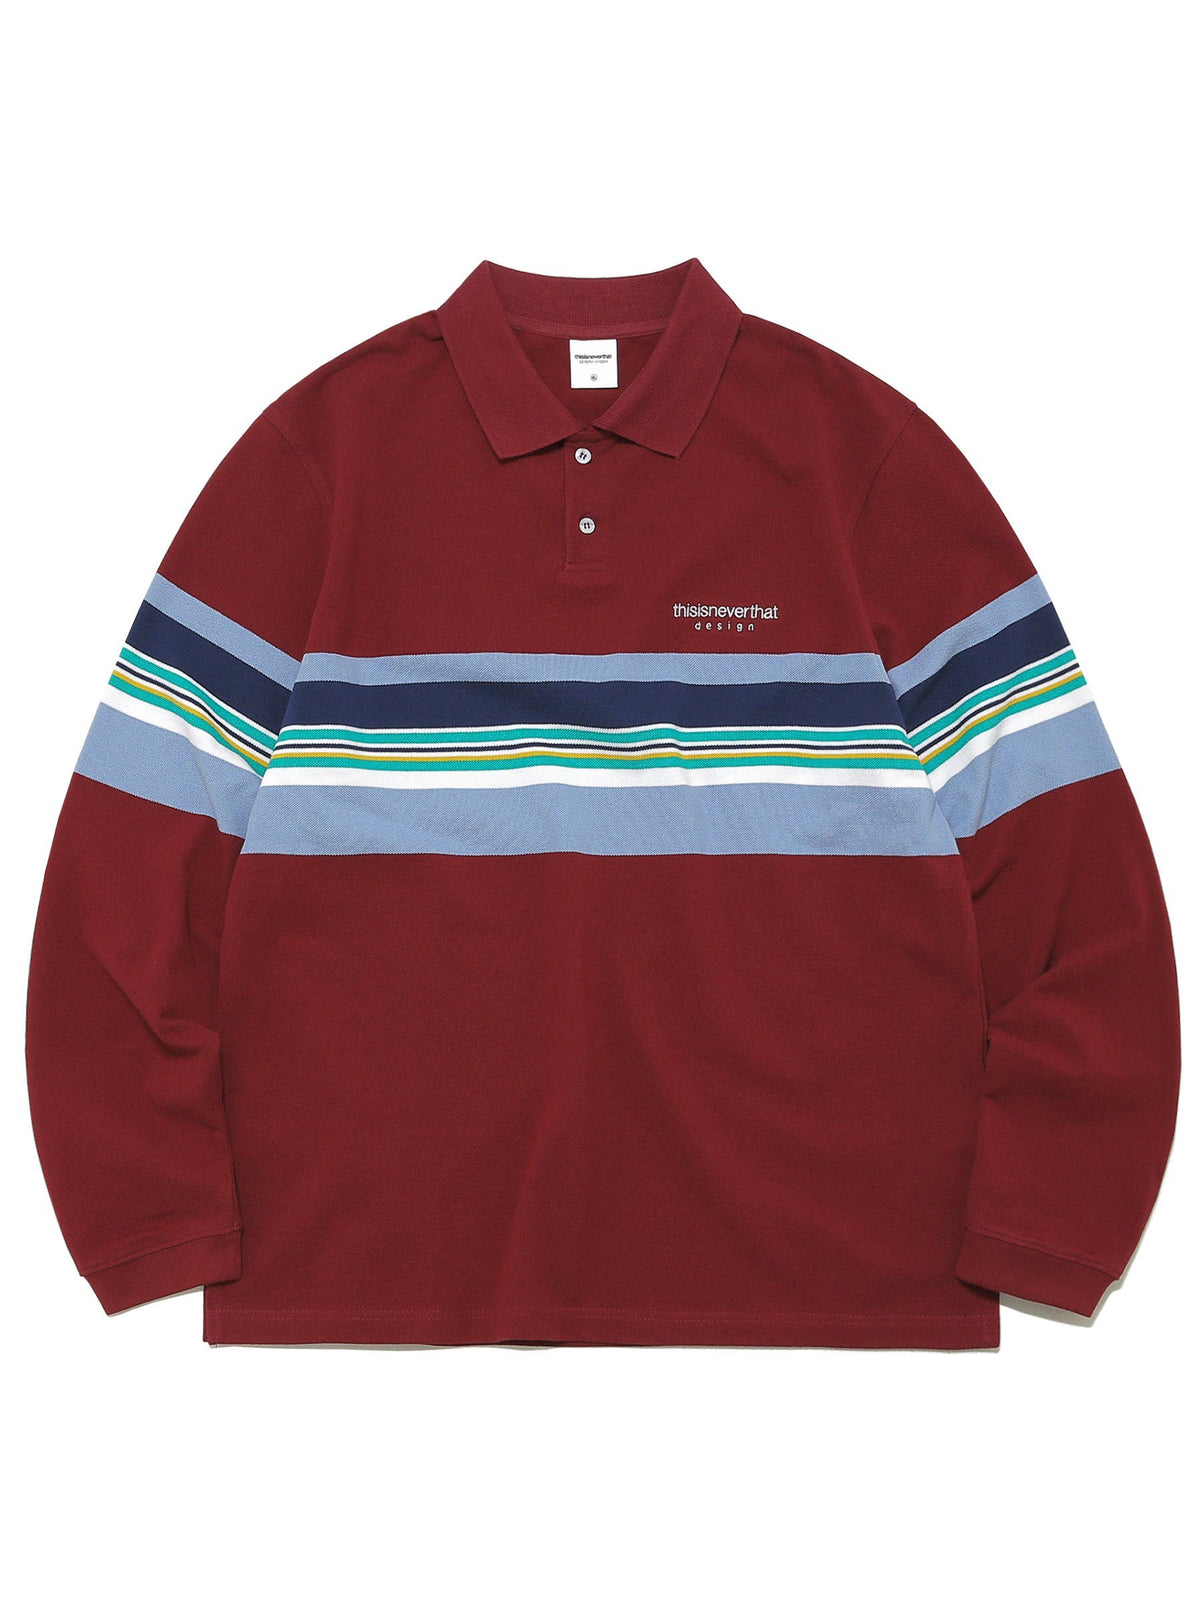 L-Logo Striped Jersey Polo - thisisneverthat